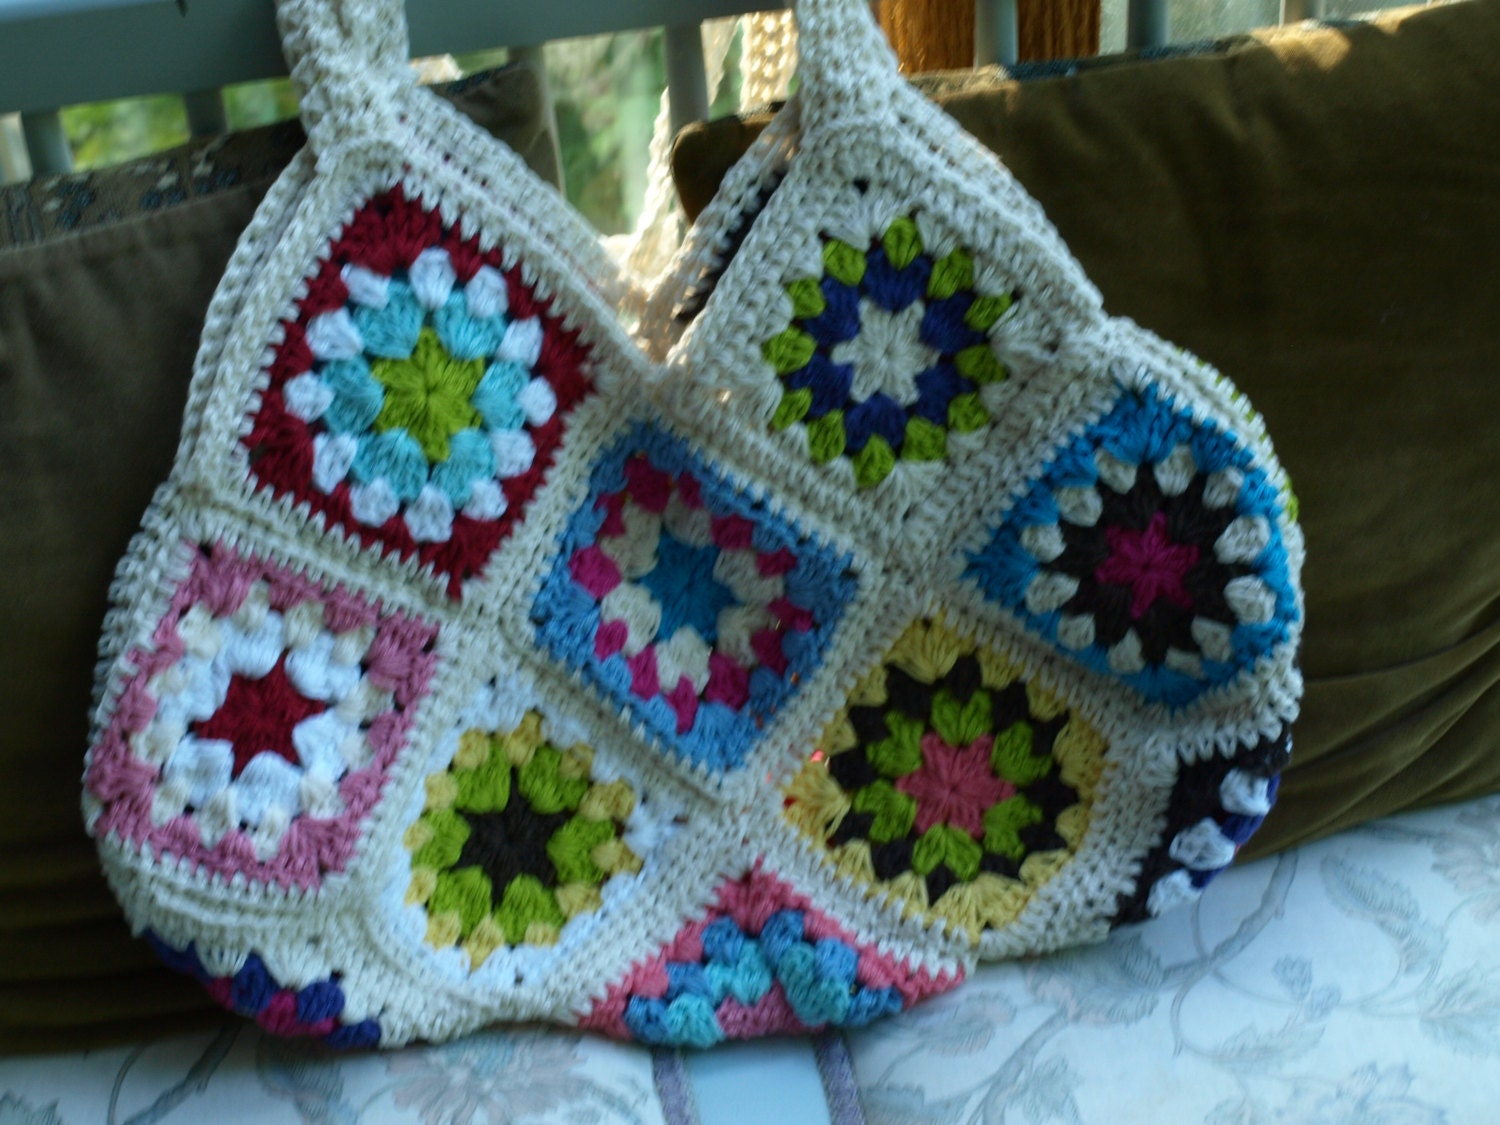 Crochet Granny Square Purse : Crochet granny square purse/ bag by TheEdgeBoutique on Etsy